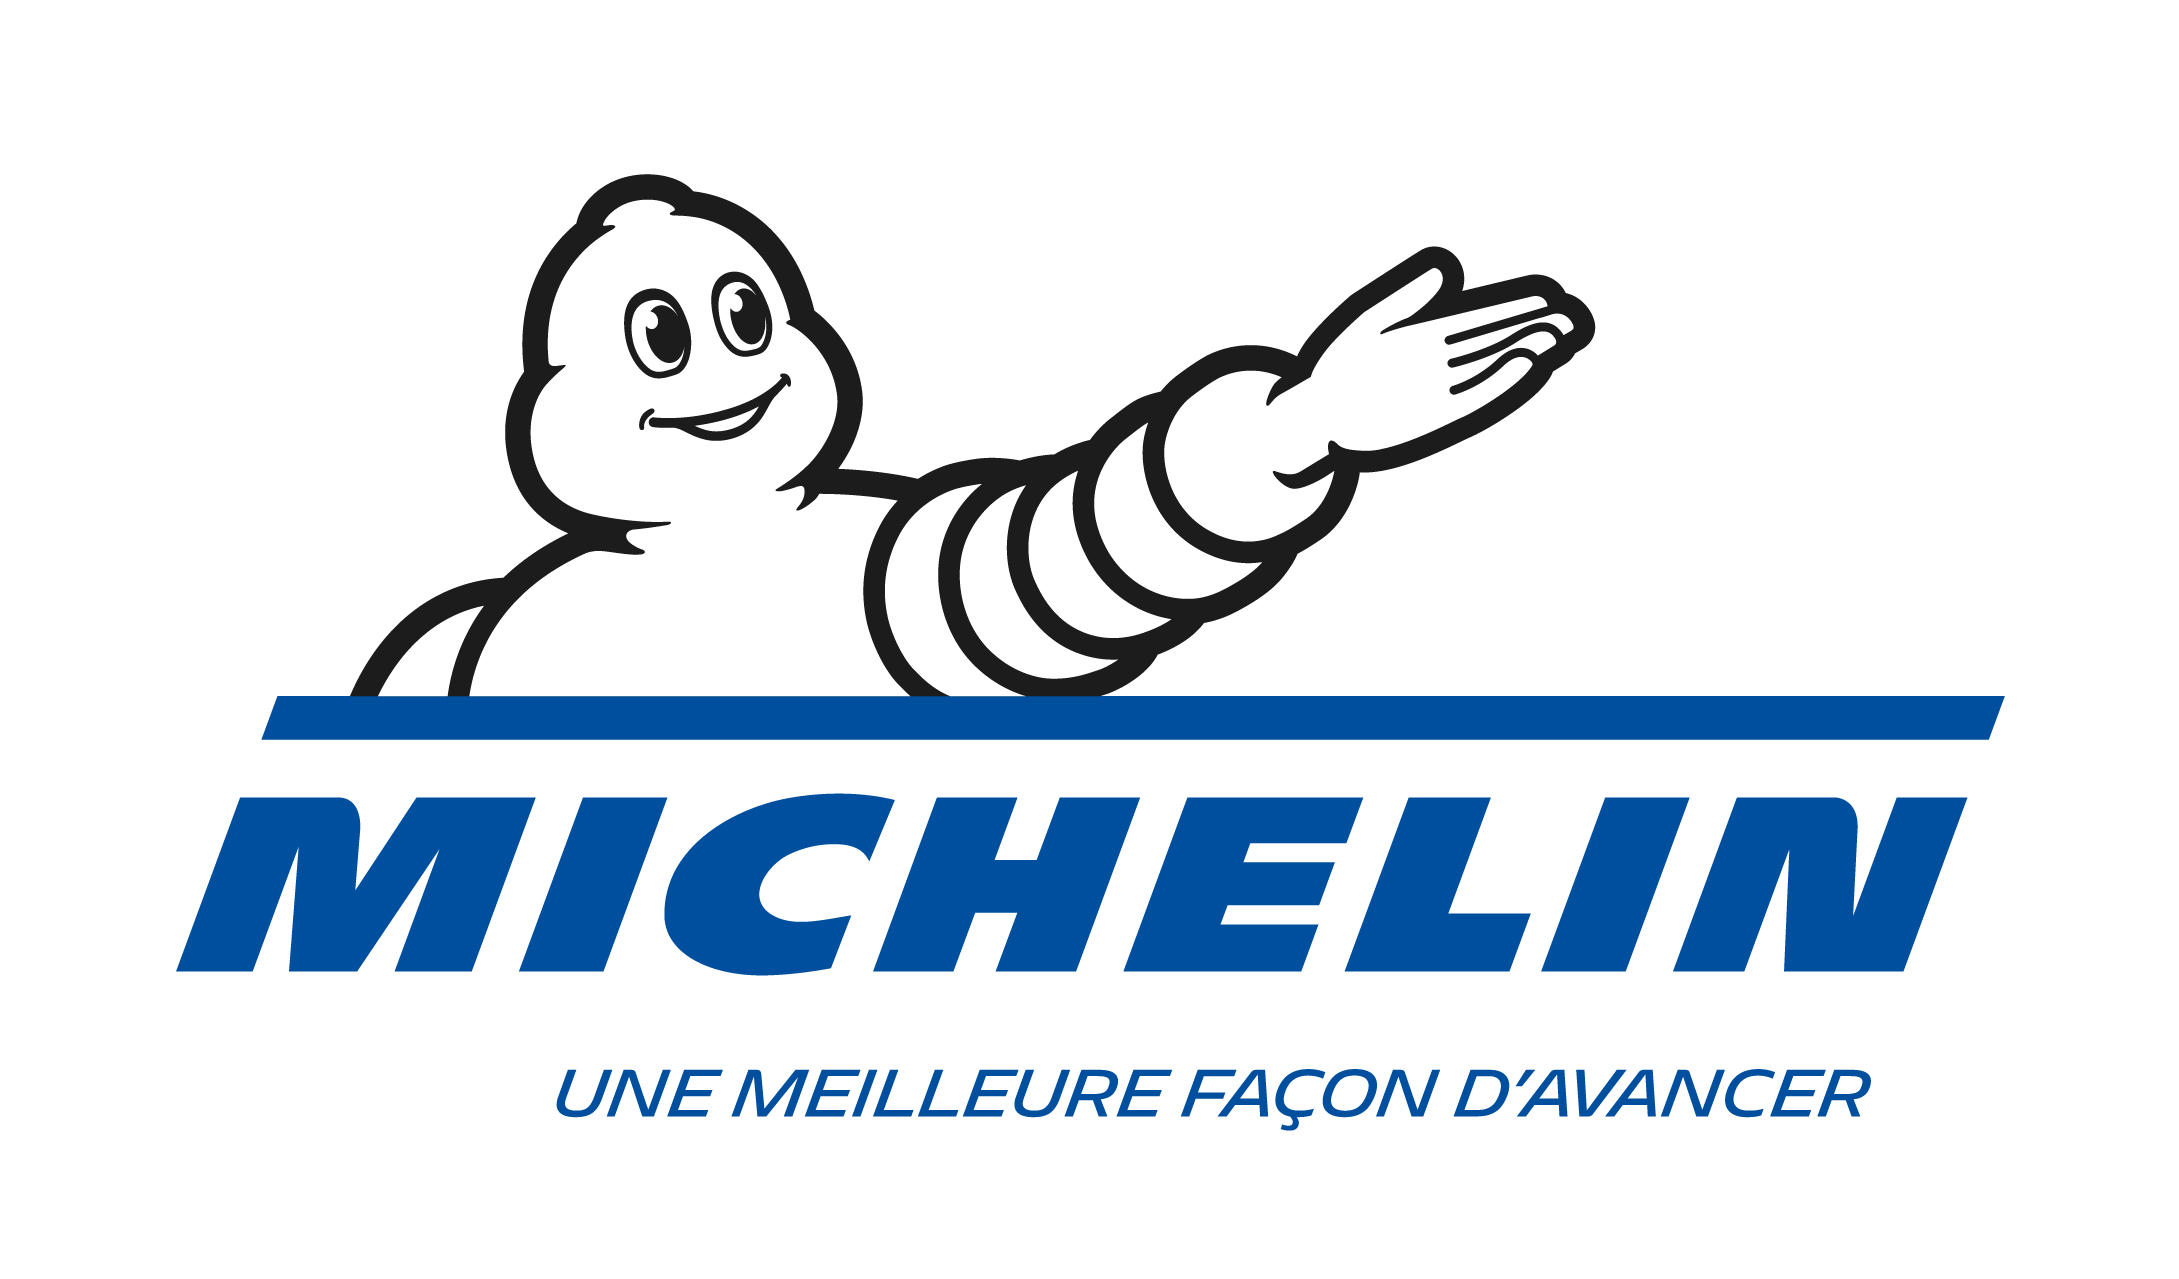 reference : Michelin